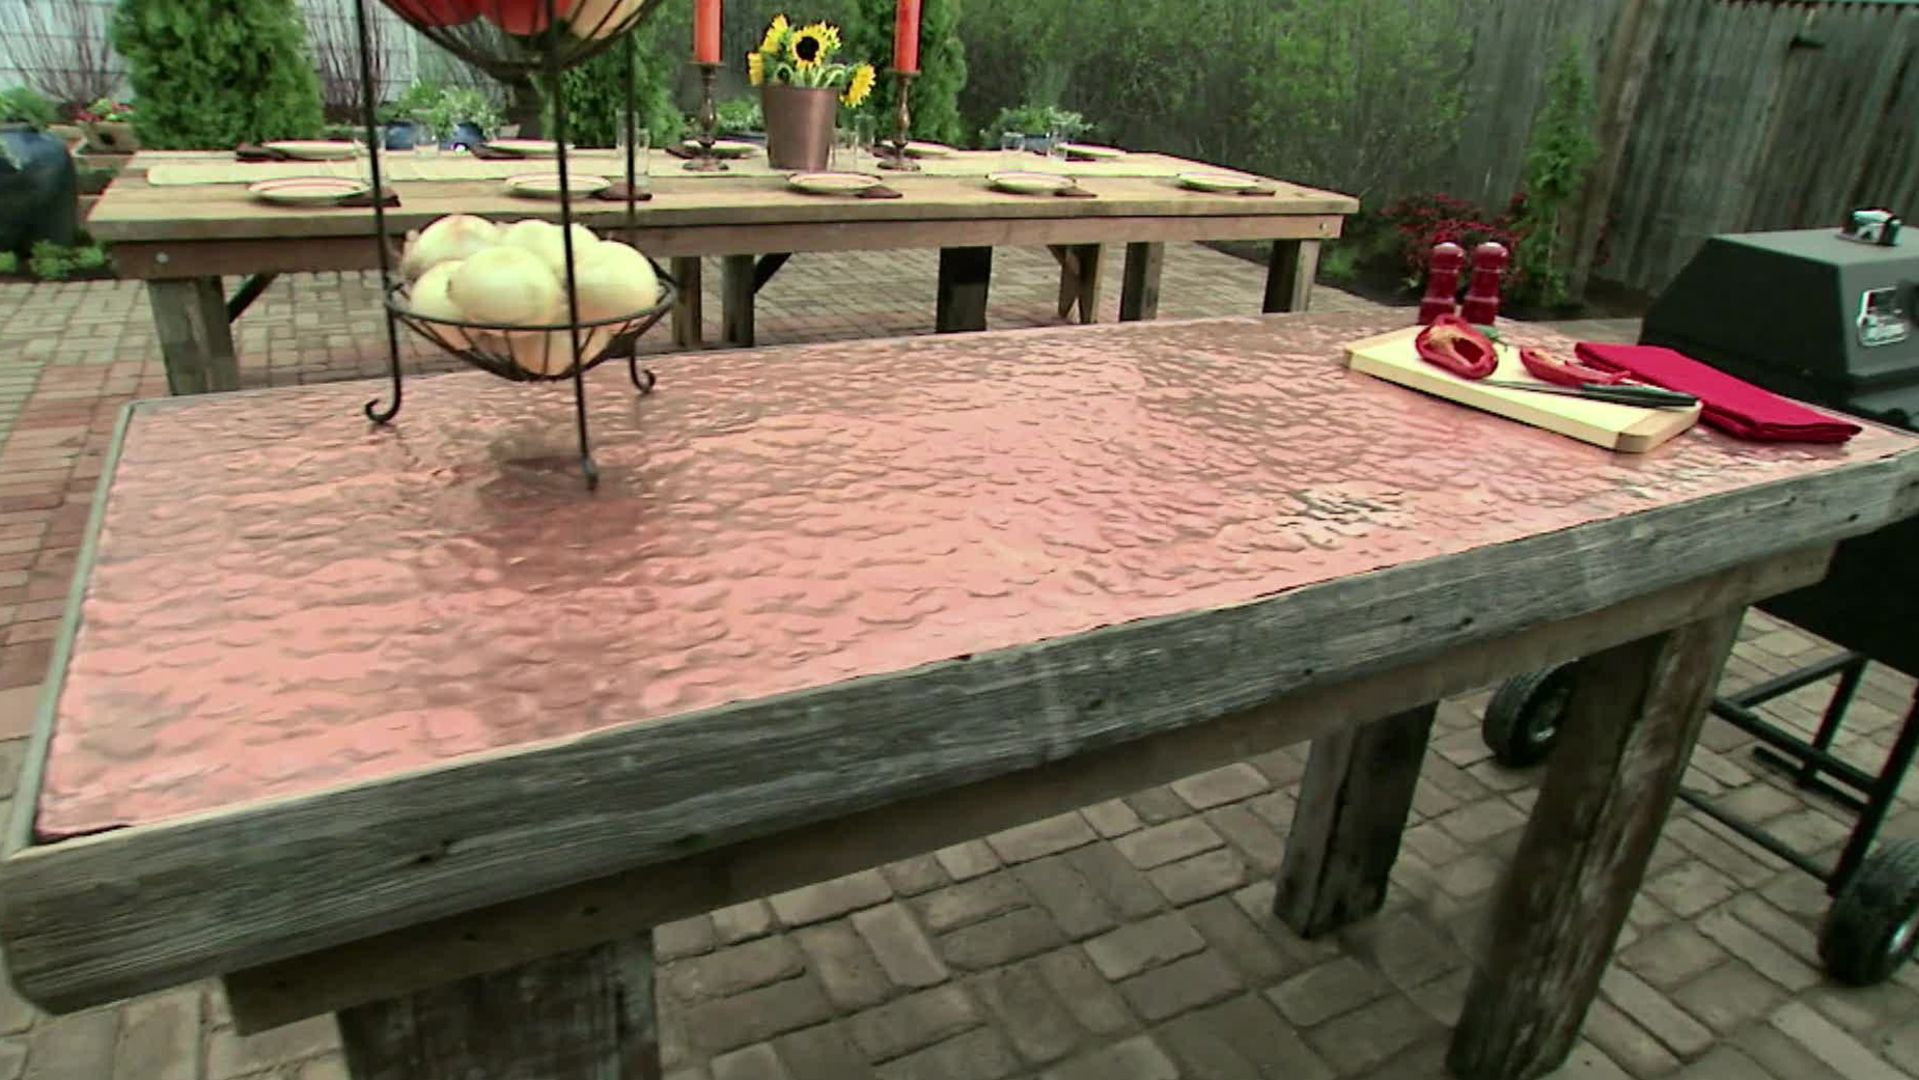 Check Out How We Made This Outdoor Food Prep Table Out Of Recycled Lumber  With A